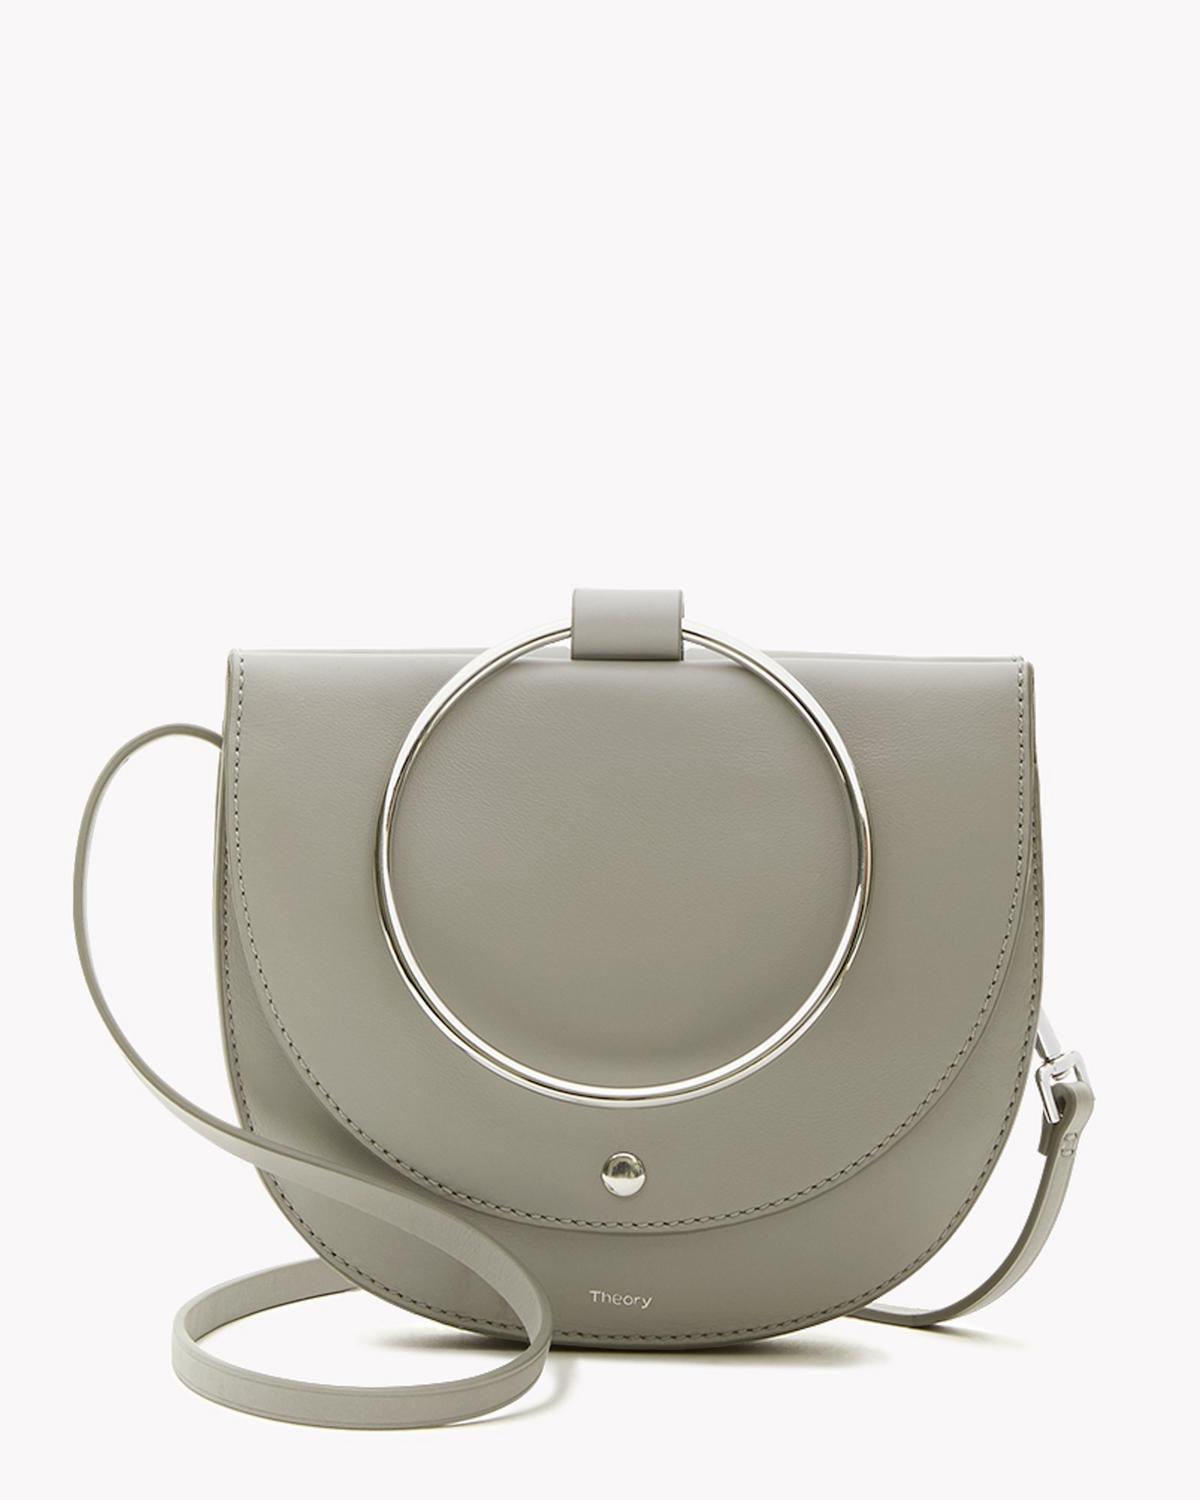 Whitney Hoop Bag in Leather